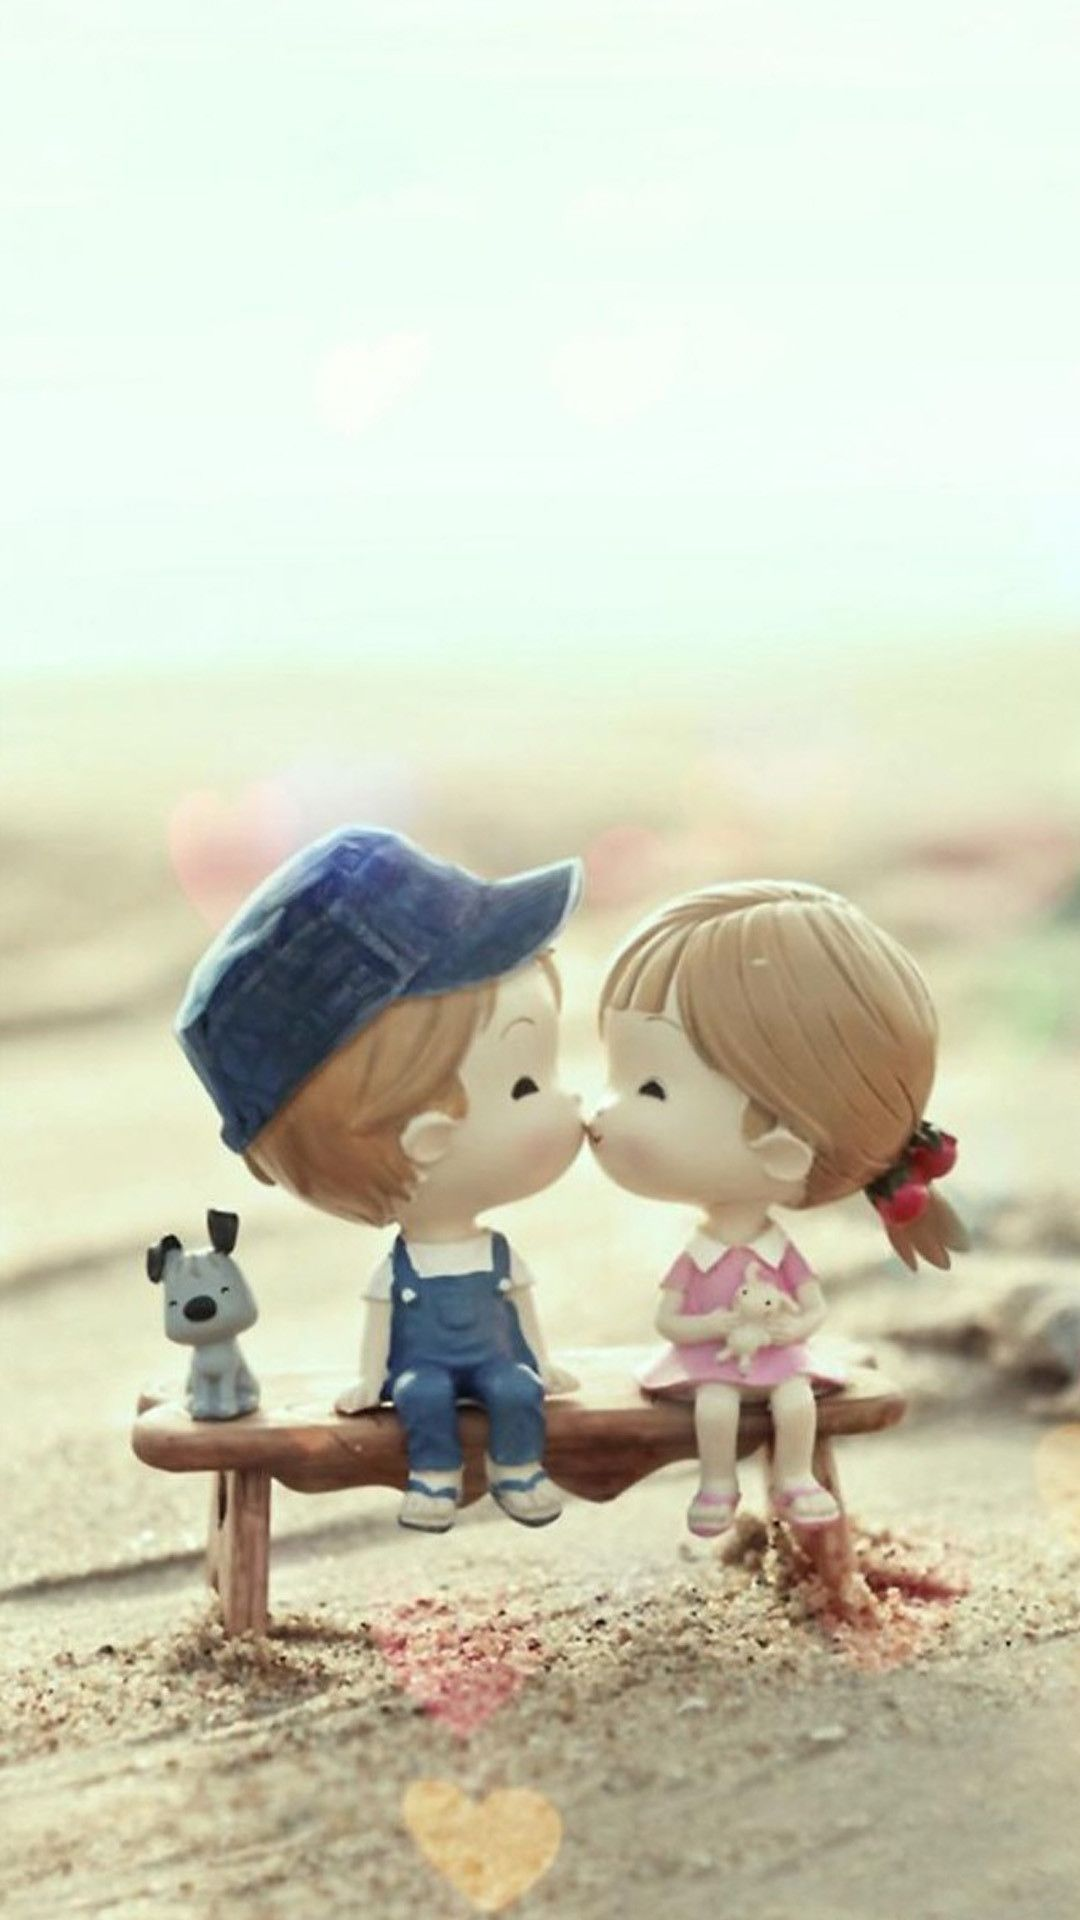 Get Anime Couple Wallpaper Hd Images In 2021 Cute Couple Wallpaper Love Couple Wallpaper Couple Wallpaper